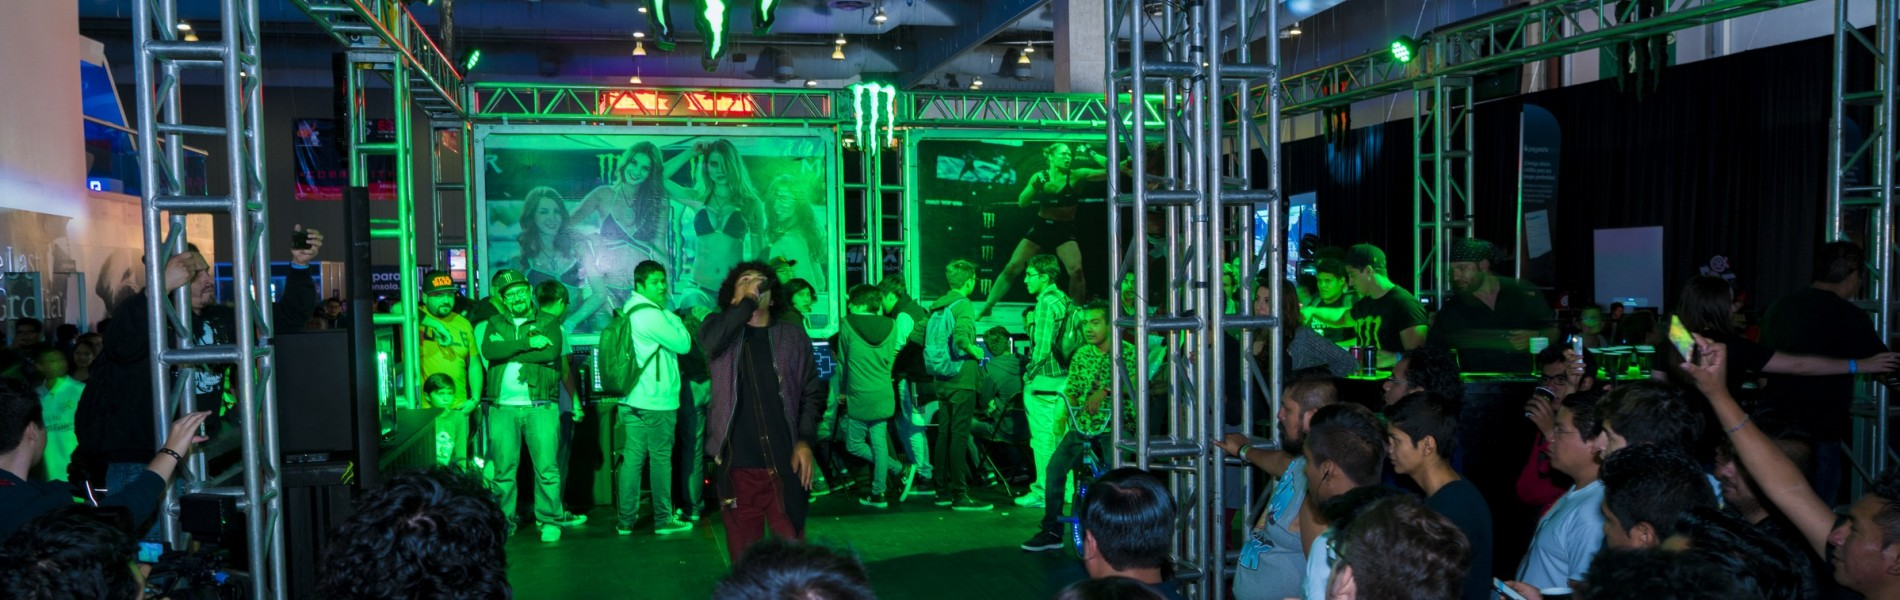 Monster Energy attending Electronic Game Show with tournaments inside the booth- Standard Unlimited Release-Felix Yosef Torres